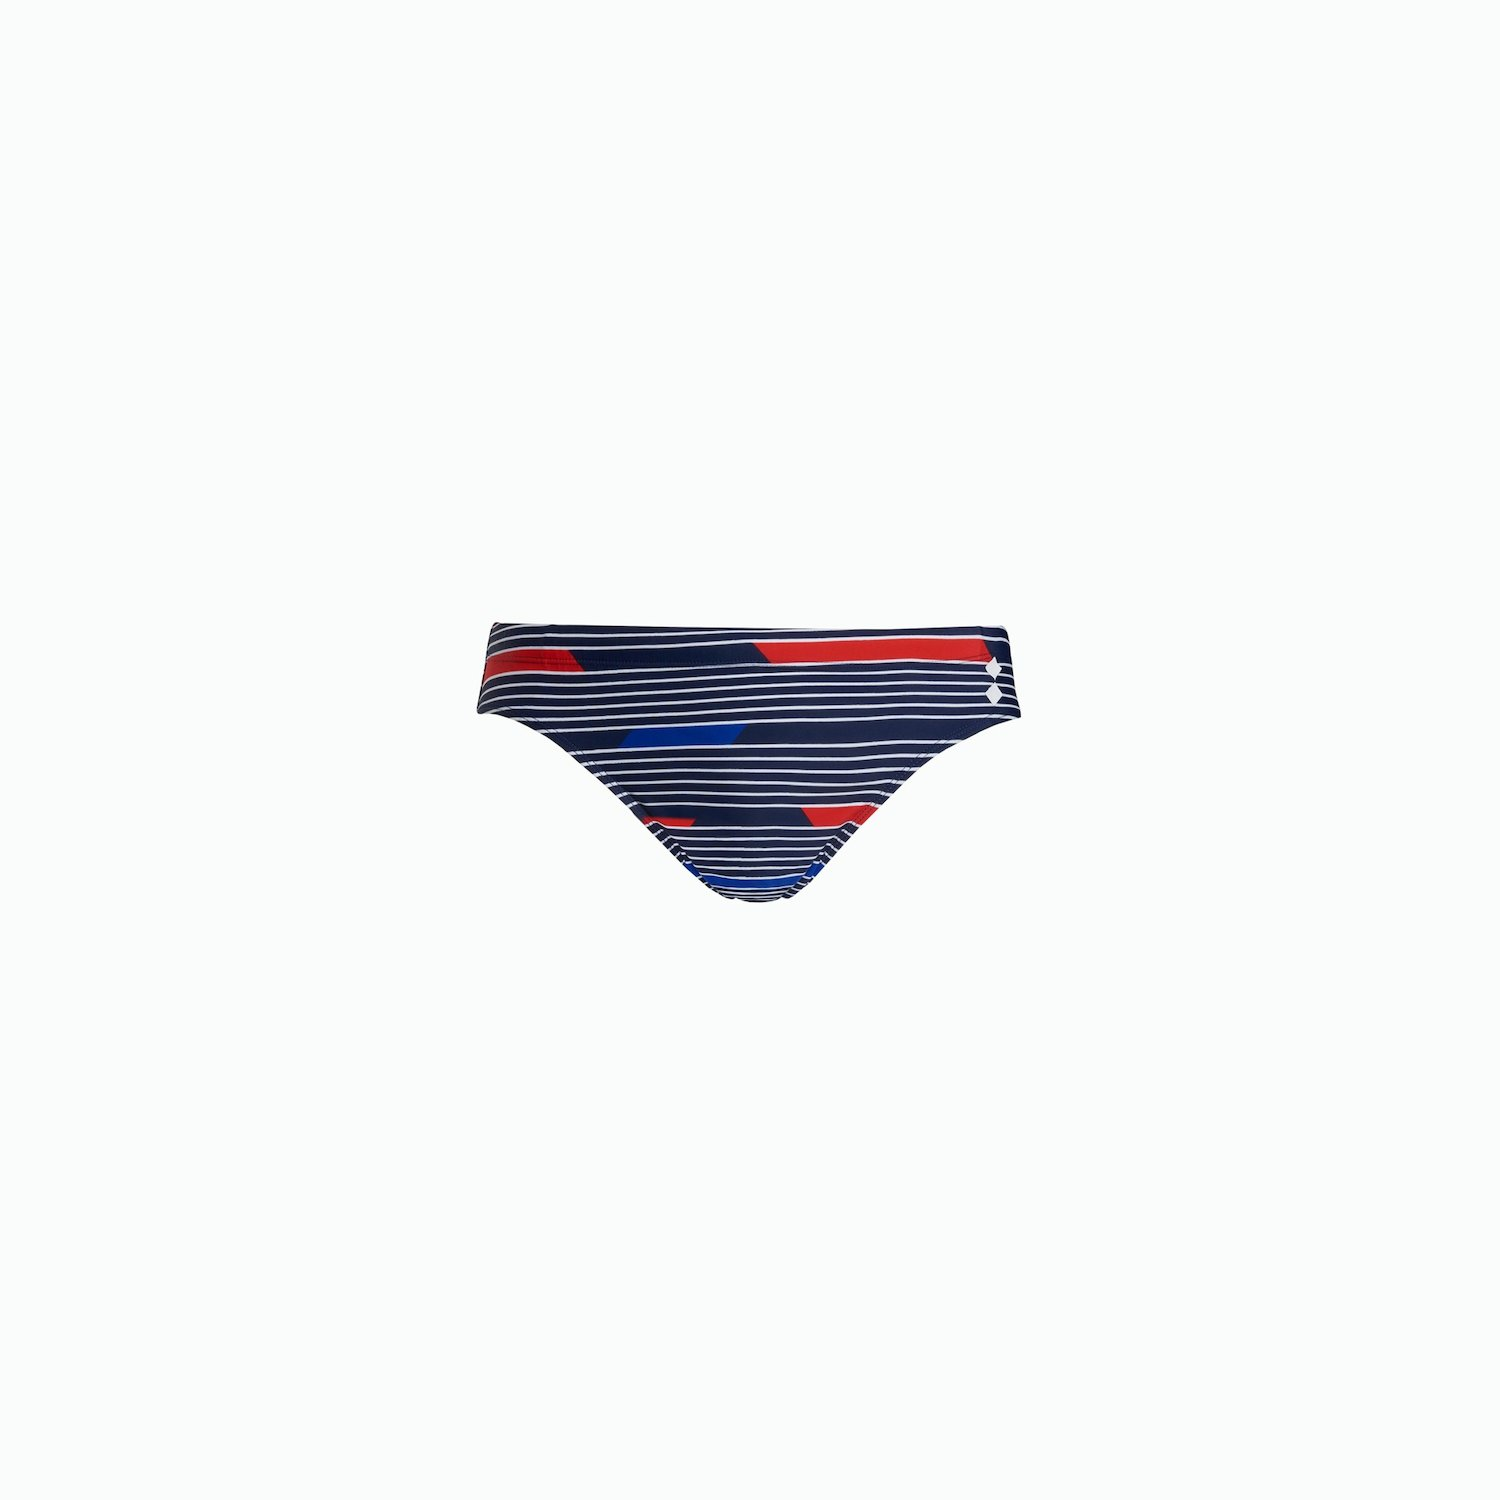 SWIMSUIT A128 - Navy